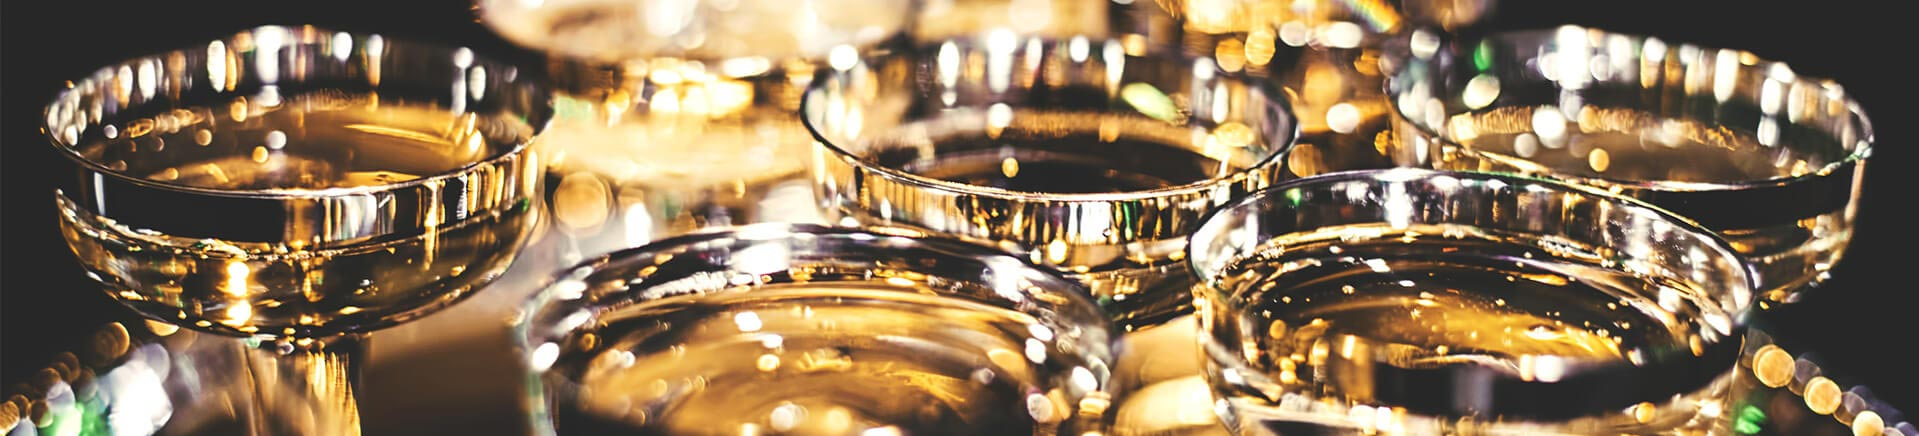 tray of sparkling gold champagne glasses